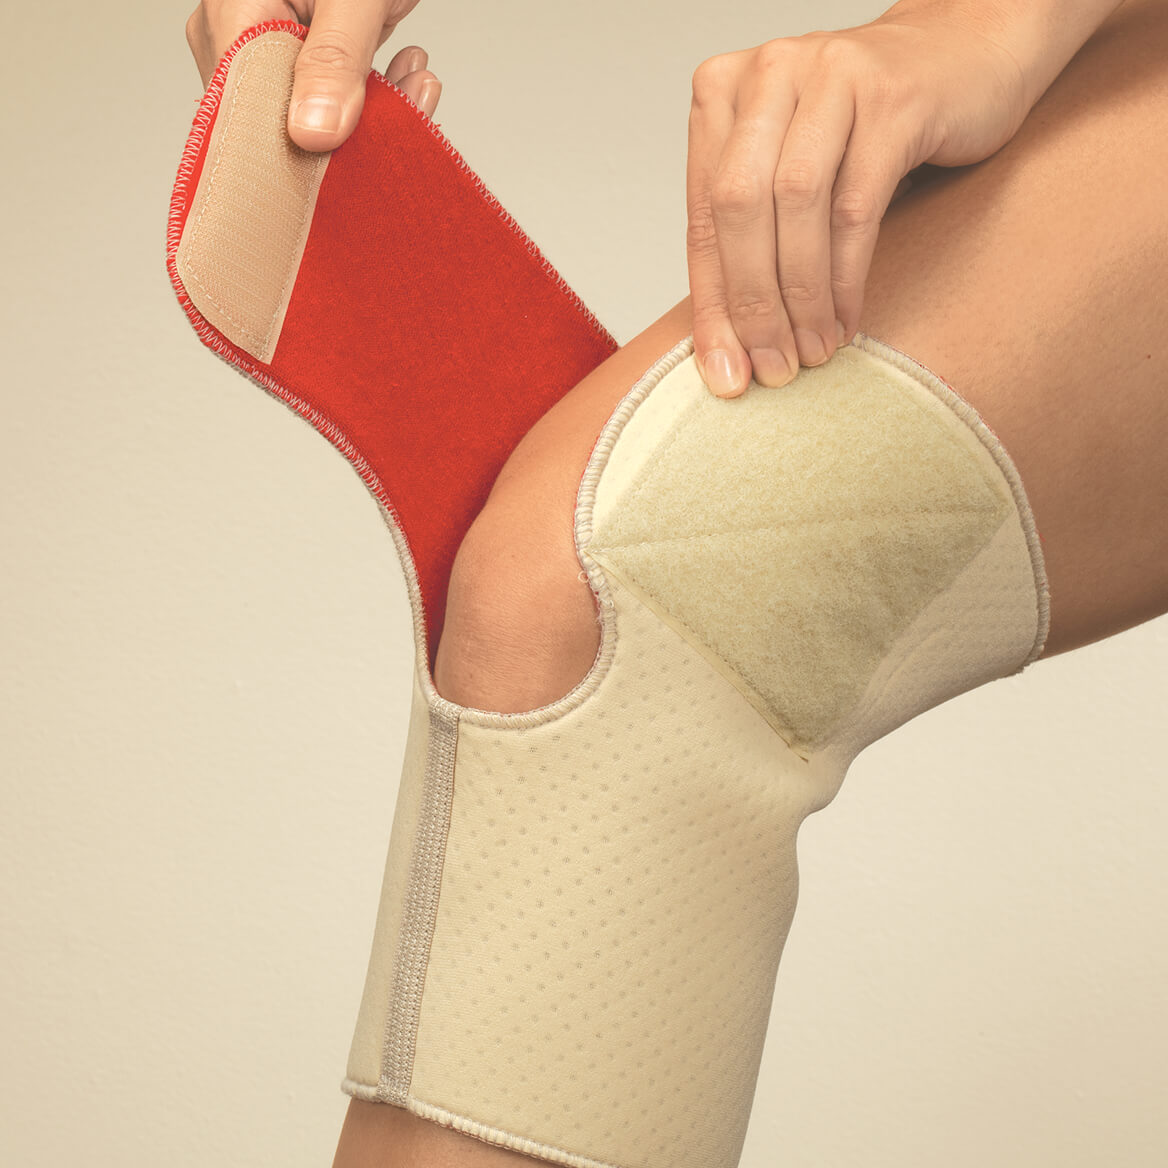 Arthritic Neoprene Knee Wrap-361274